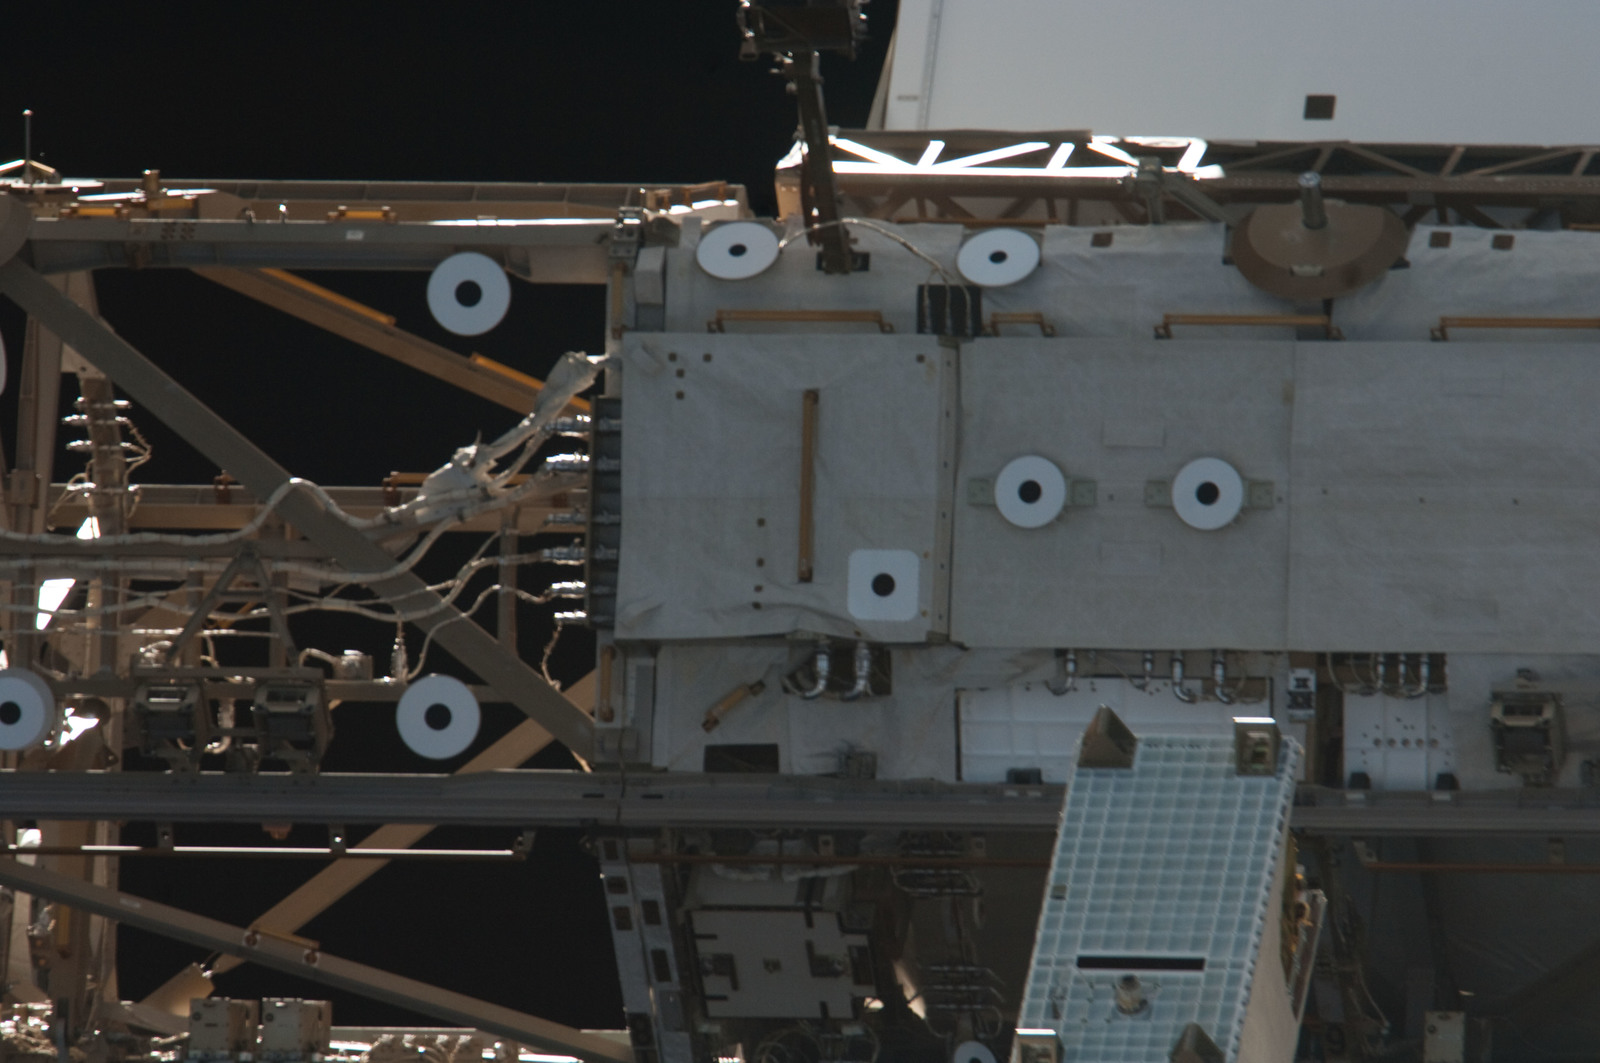 S134E011387 - STS-134 - Close-up view of Port Side Truss Segments